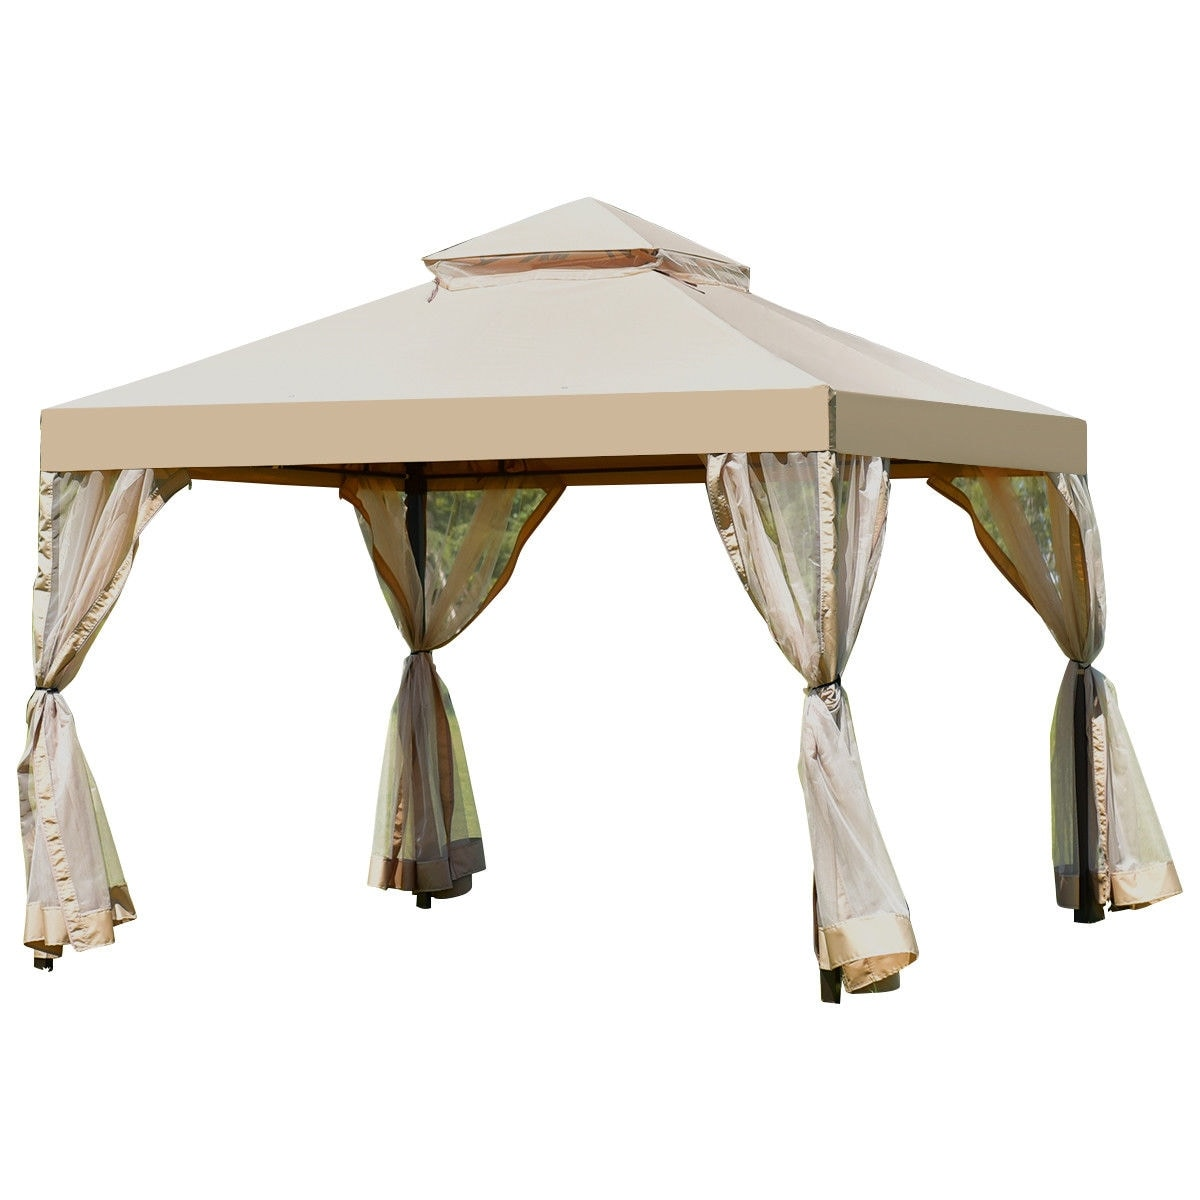 Costway Outdoor 2-Tier 10u0027x10u0027 Gazebo Canopy Shelter Awning Tent Patio Garden Brown - Free Shipping Today - Overstock.com - 24427186  sc 1 st  Overstock.com & Costway Outdoor 2-Tier 10u0027x10u0027 Gazebo Canopy Shelter Awning Tent ...